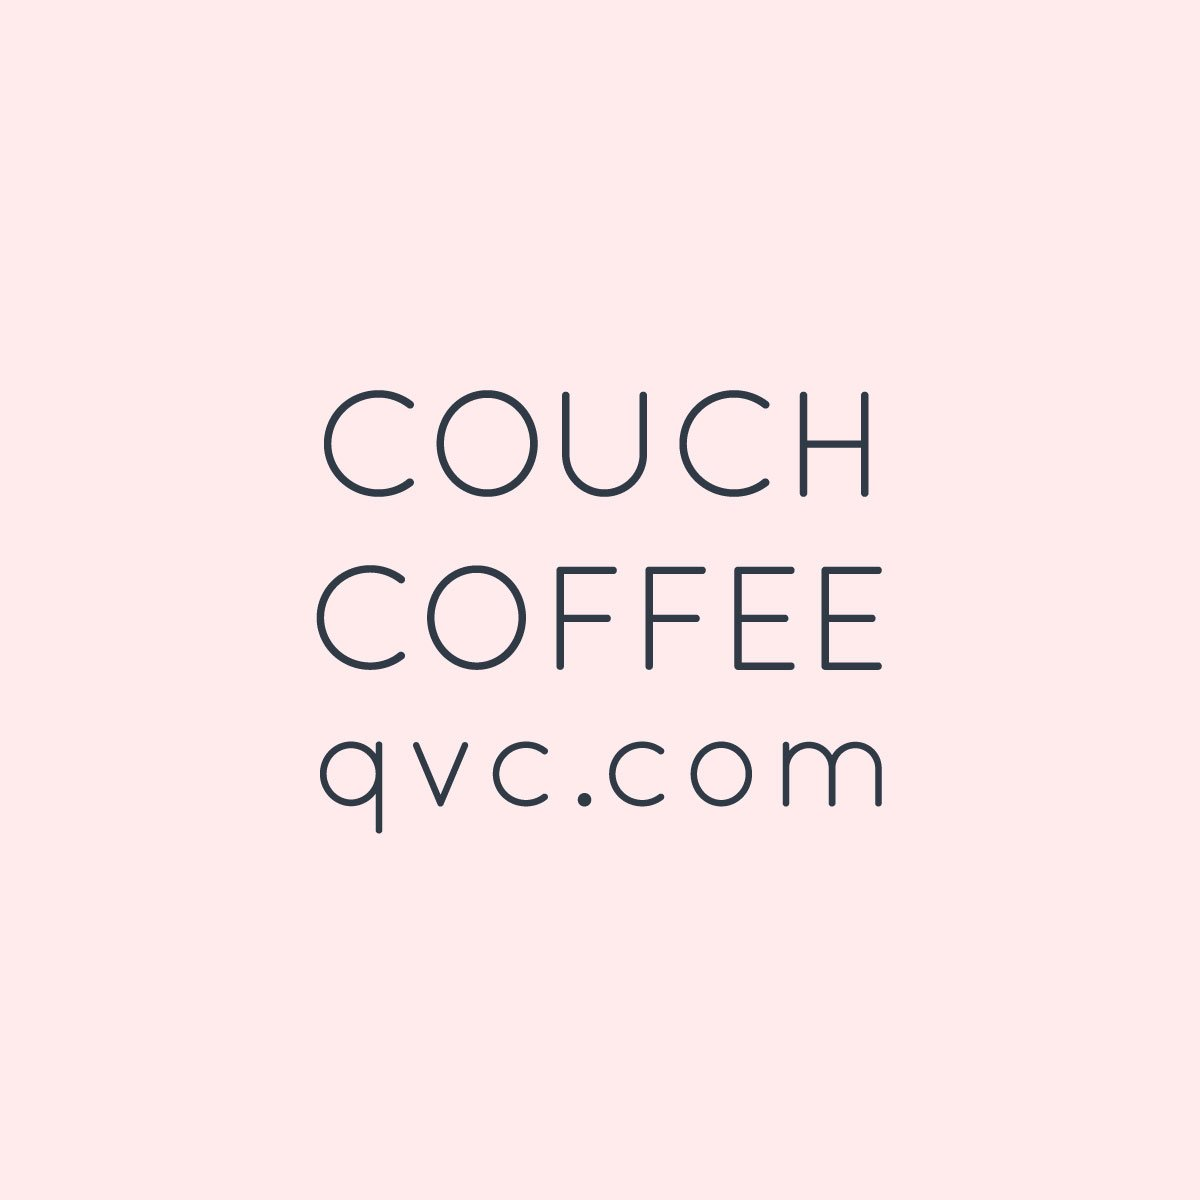 RT @QVC: ????Something special is coming tonight at 12am ET!???? GET READY!☕️???? https://t.co/3NITIKAEfB